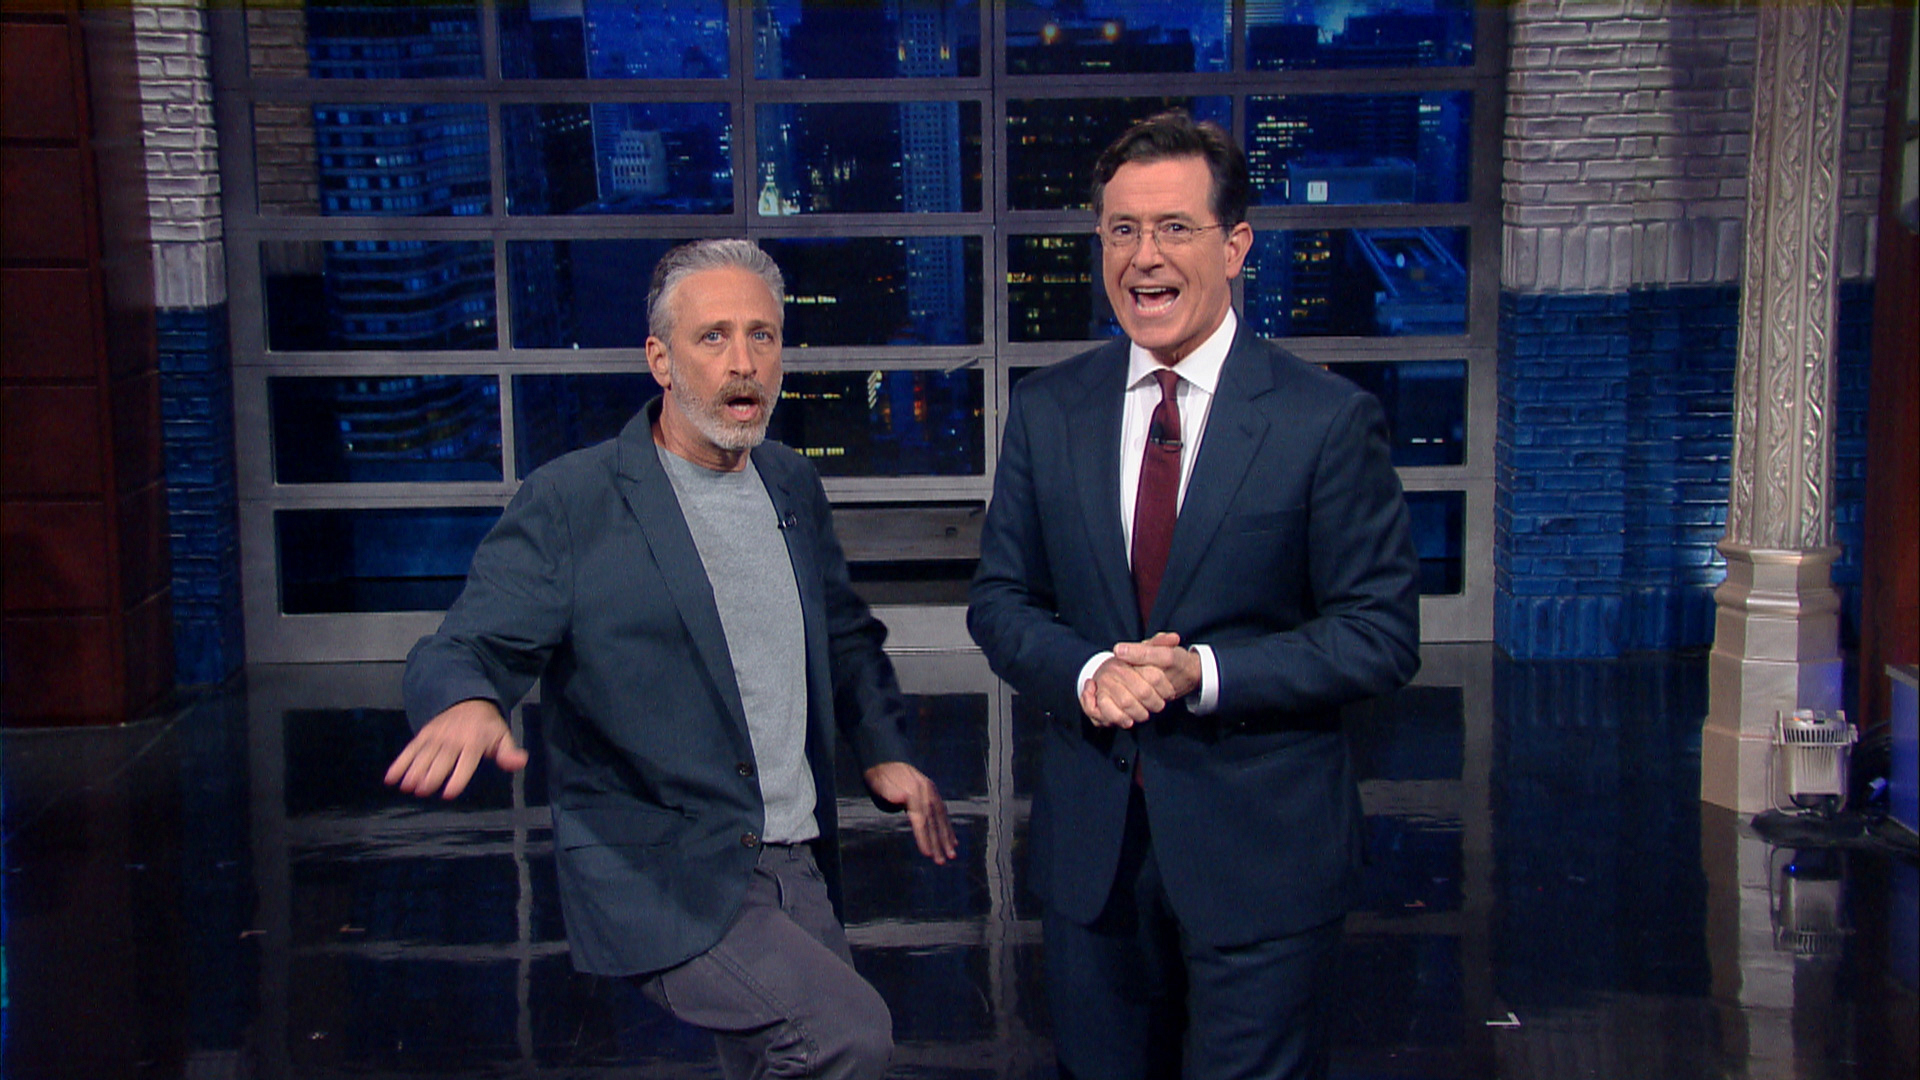 Jon Stewart made a much-anticipated visit to The Late Show.